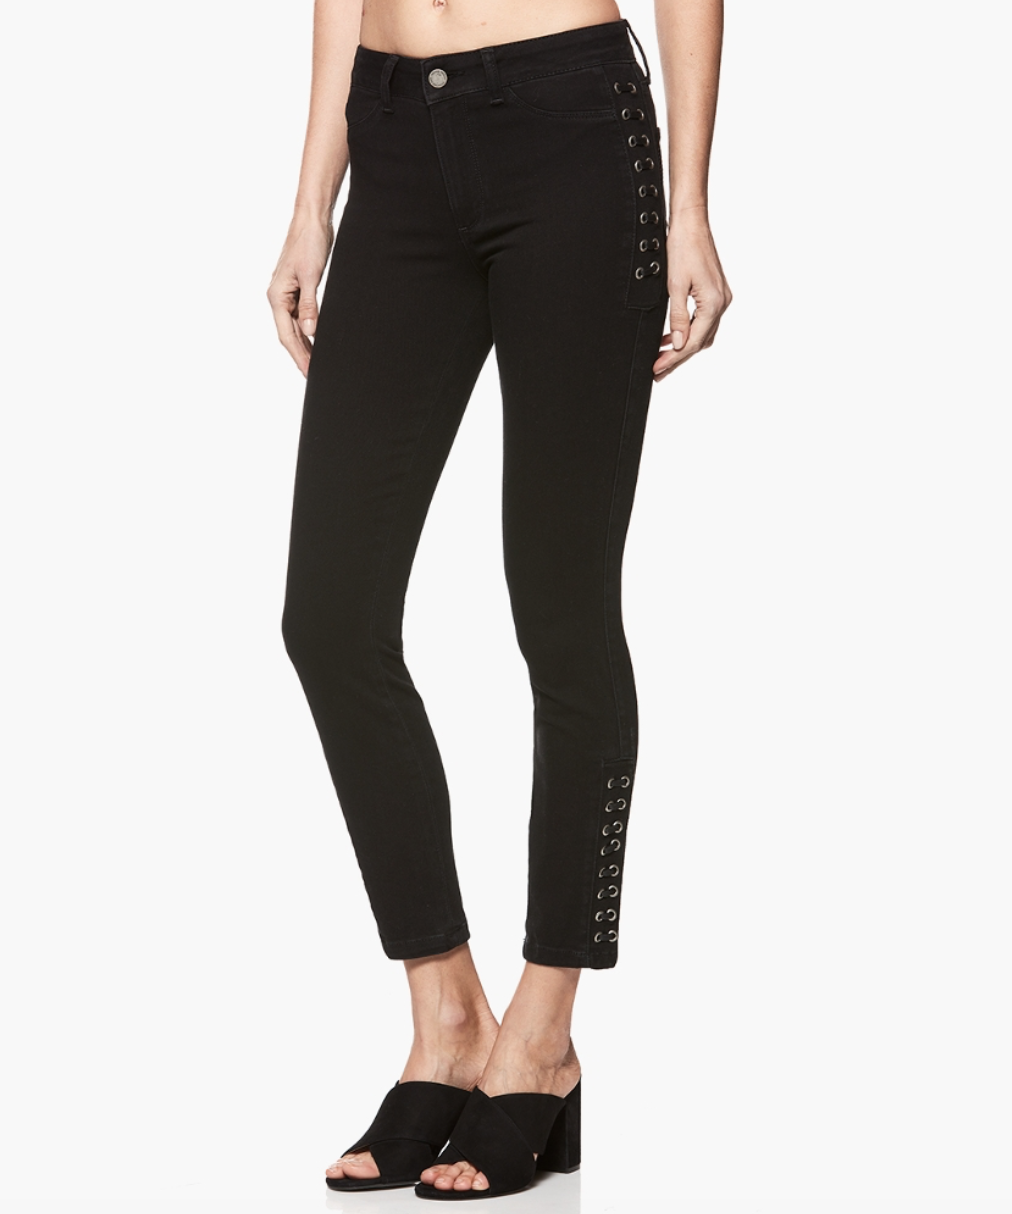 PAIGE Lacey Ultra Skinny Noir, Sky, taille 27, Neuf avec étiquettes